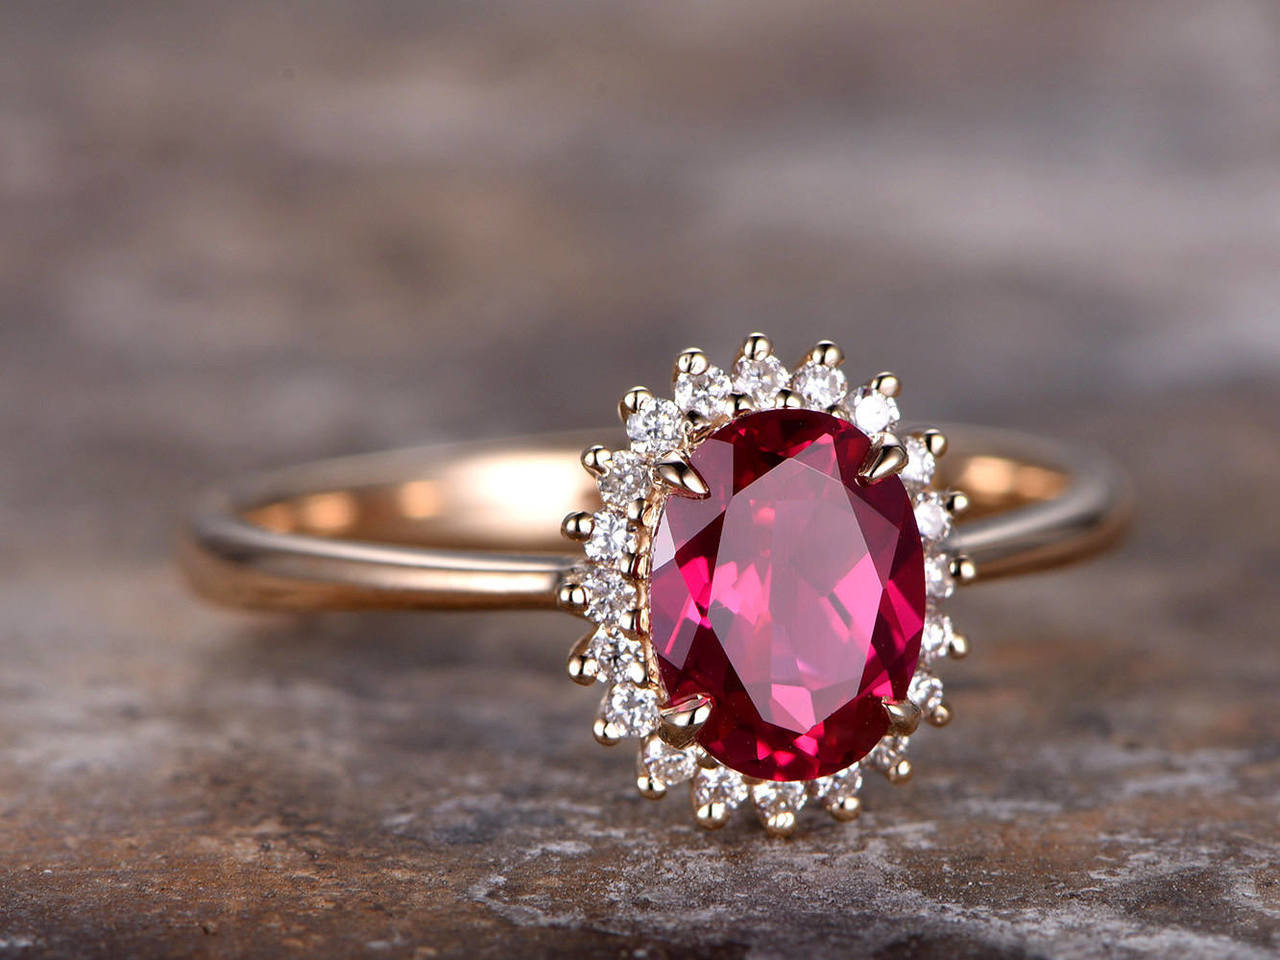 7a1341324e9e52 6x8mm Oval Cut Lab treated Ruby Engagement ring rose gold plated,925  sterling silver retro vintage wedding band,Bridal ring,Women's ring - BBBGEM